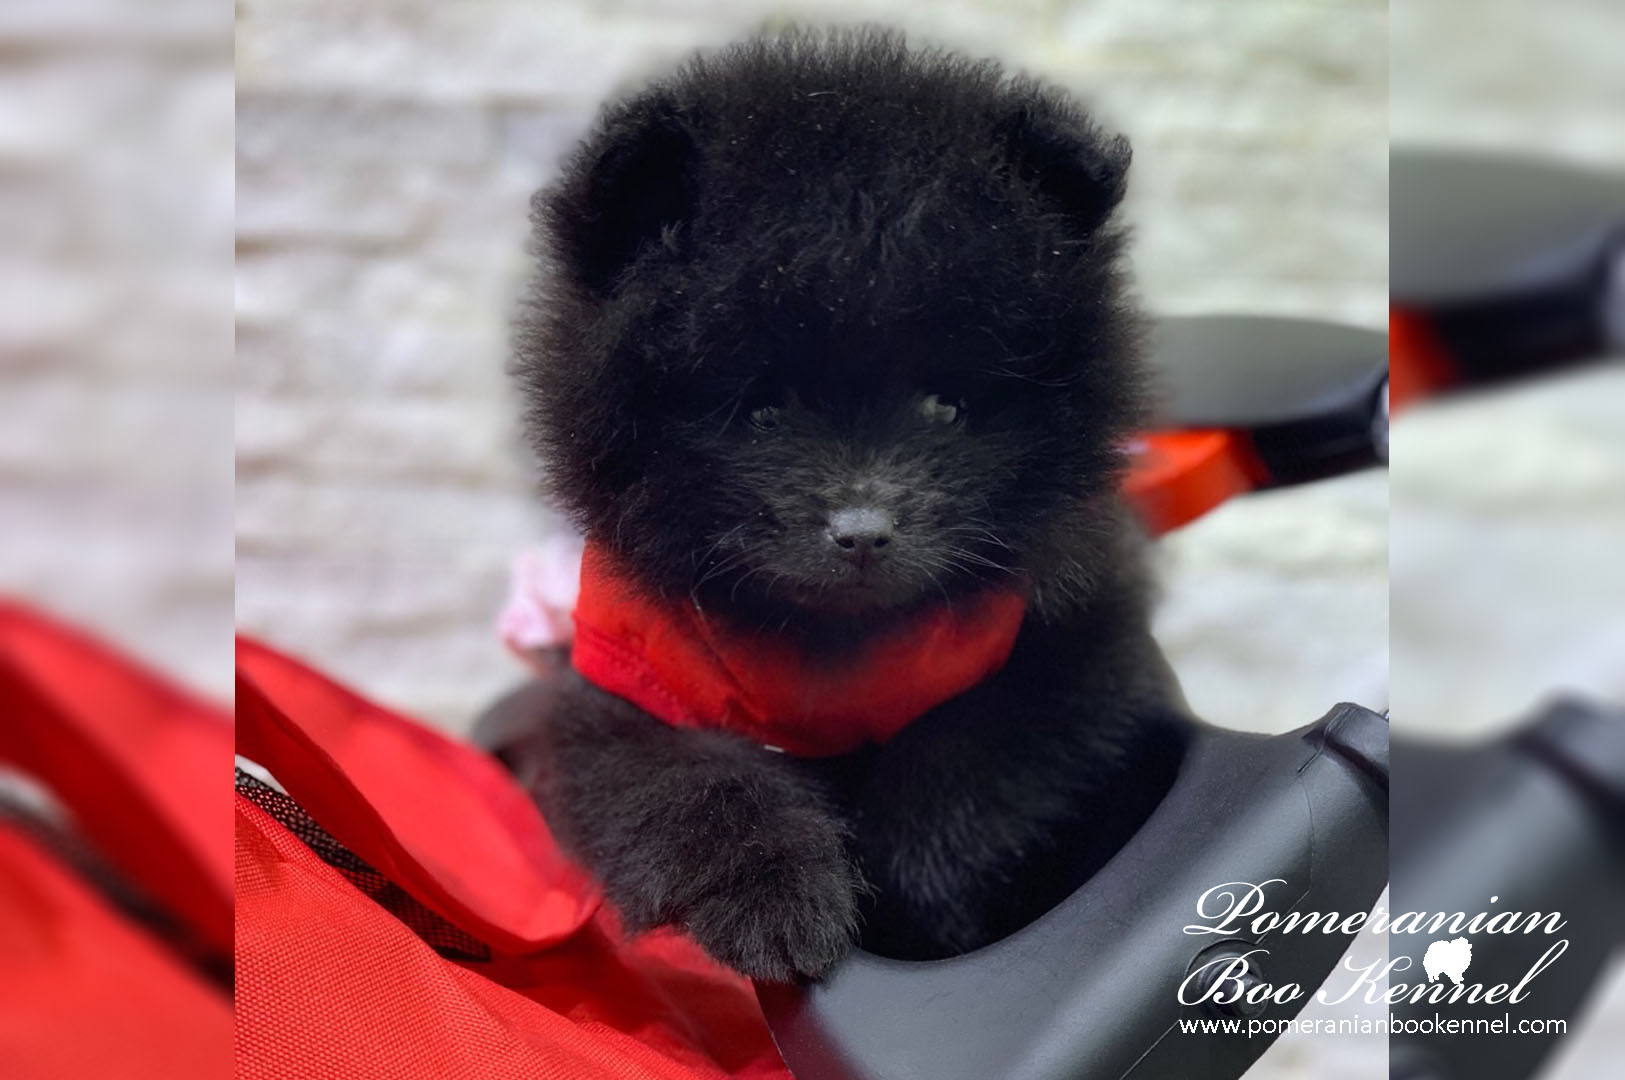 Male Puppy of Black Pomeranian